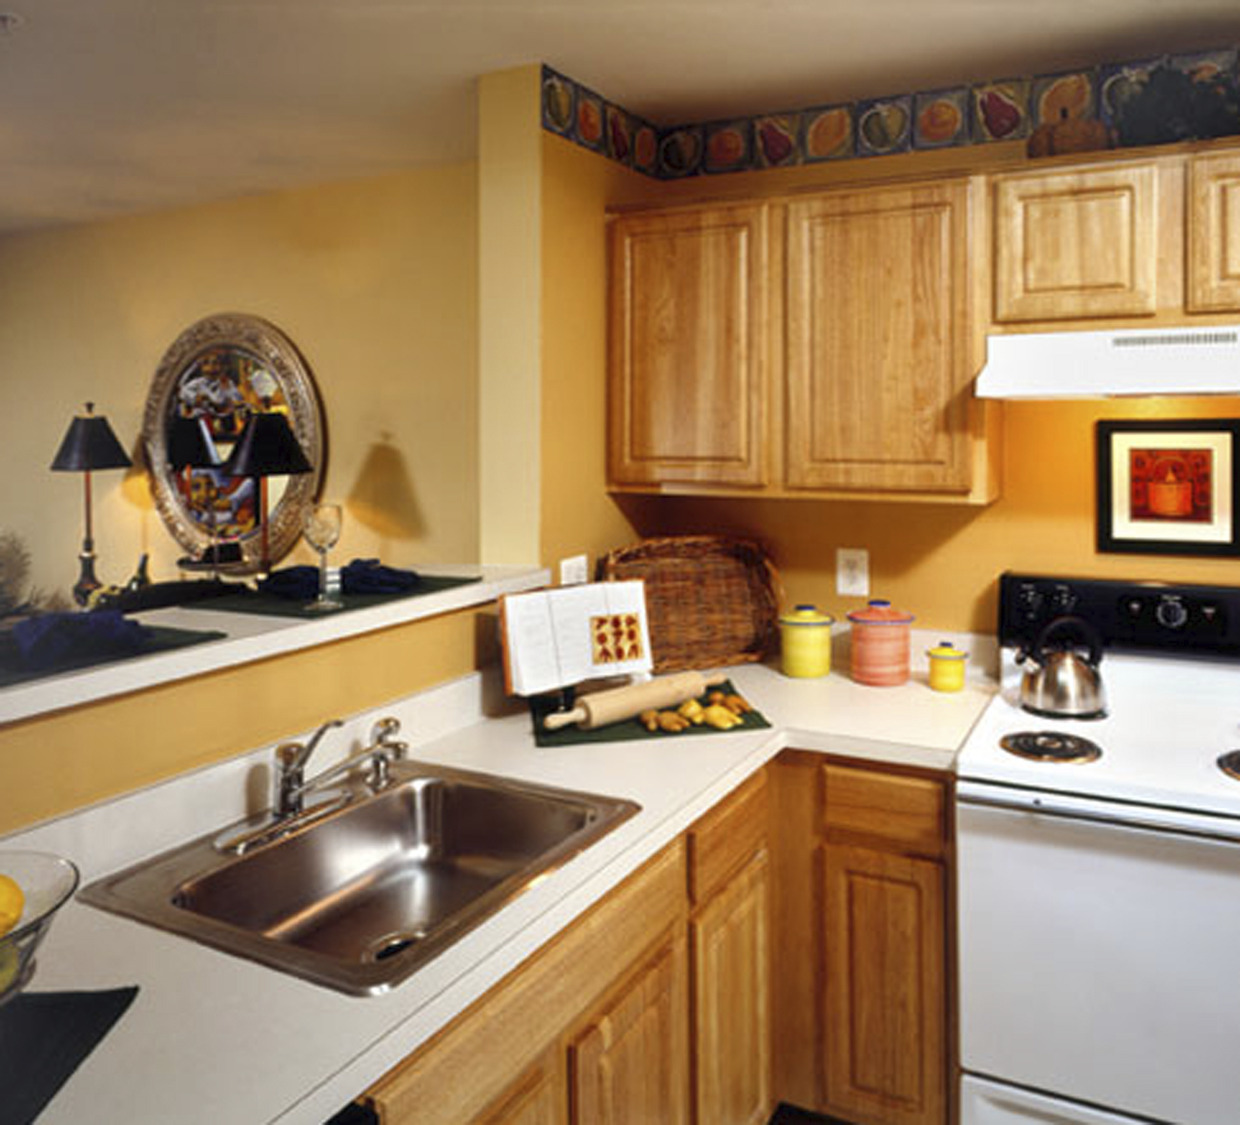 CBG builds Chantilly Crossing, a 206 Market-Rate Condo Units in Chantilly, VA - Image #5